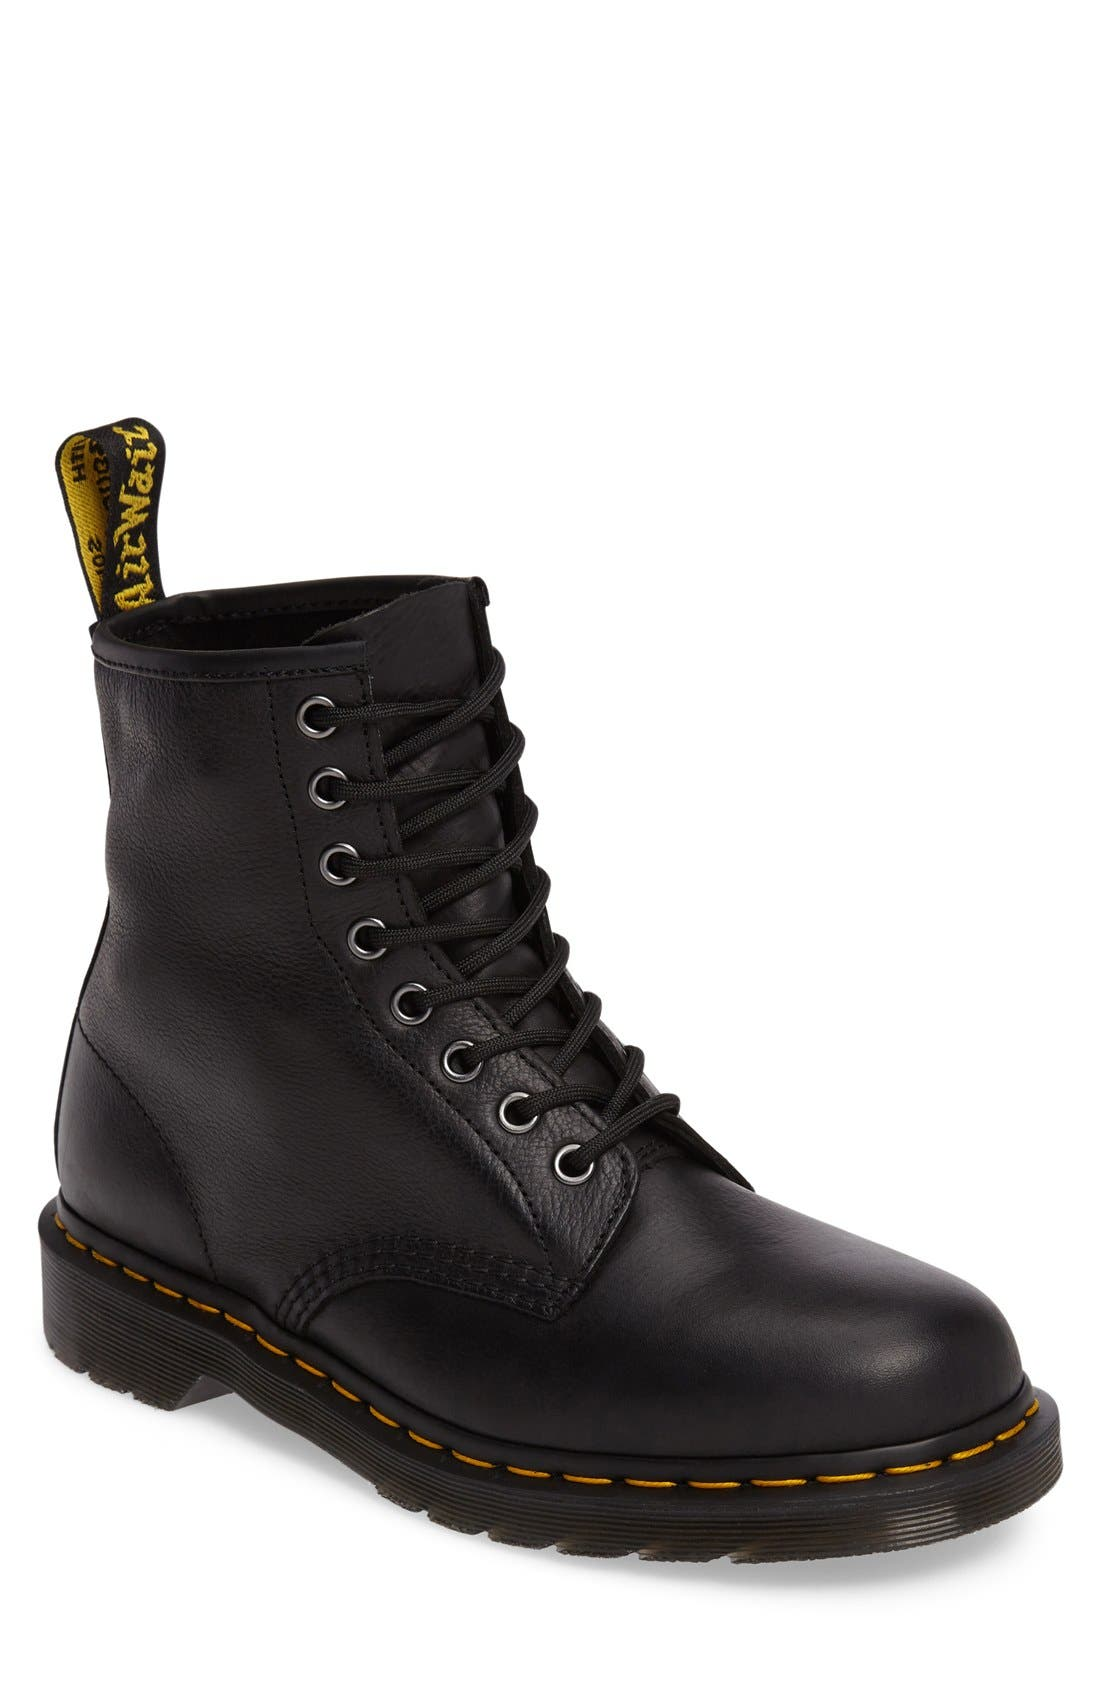 '1460' Plain Toe Boot,                             Main thumbnail 1, color,                             001